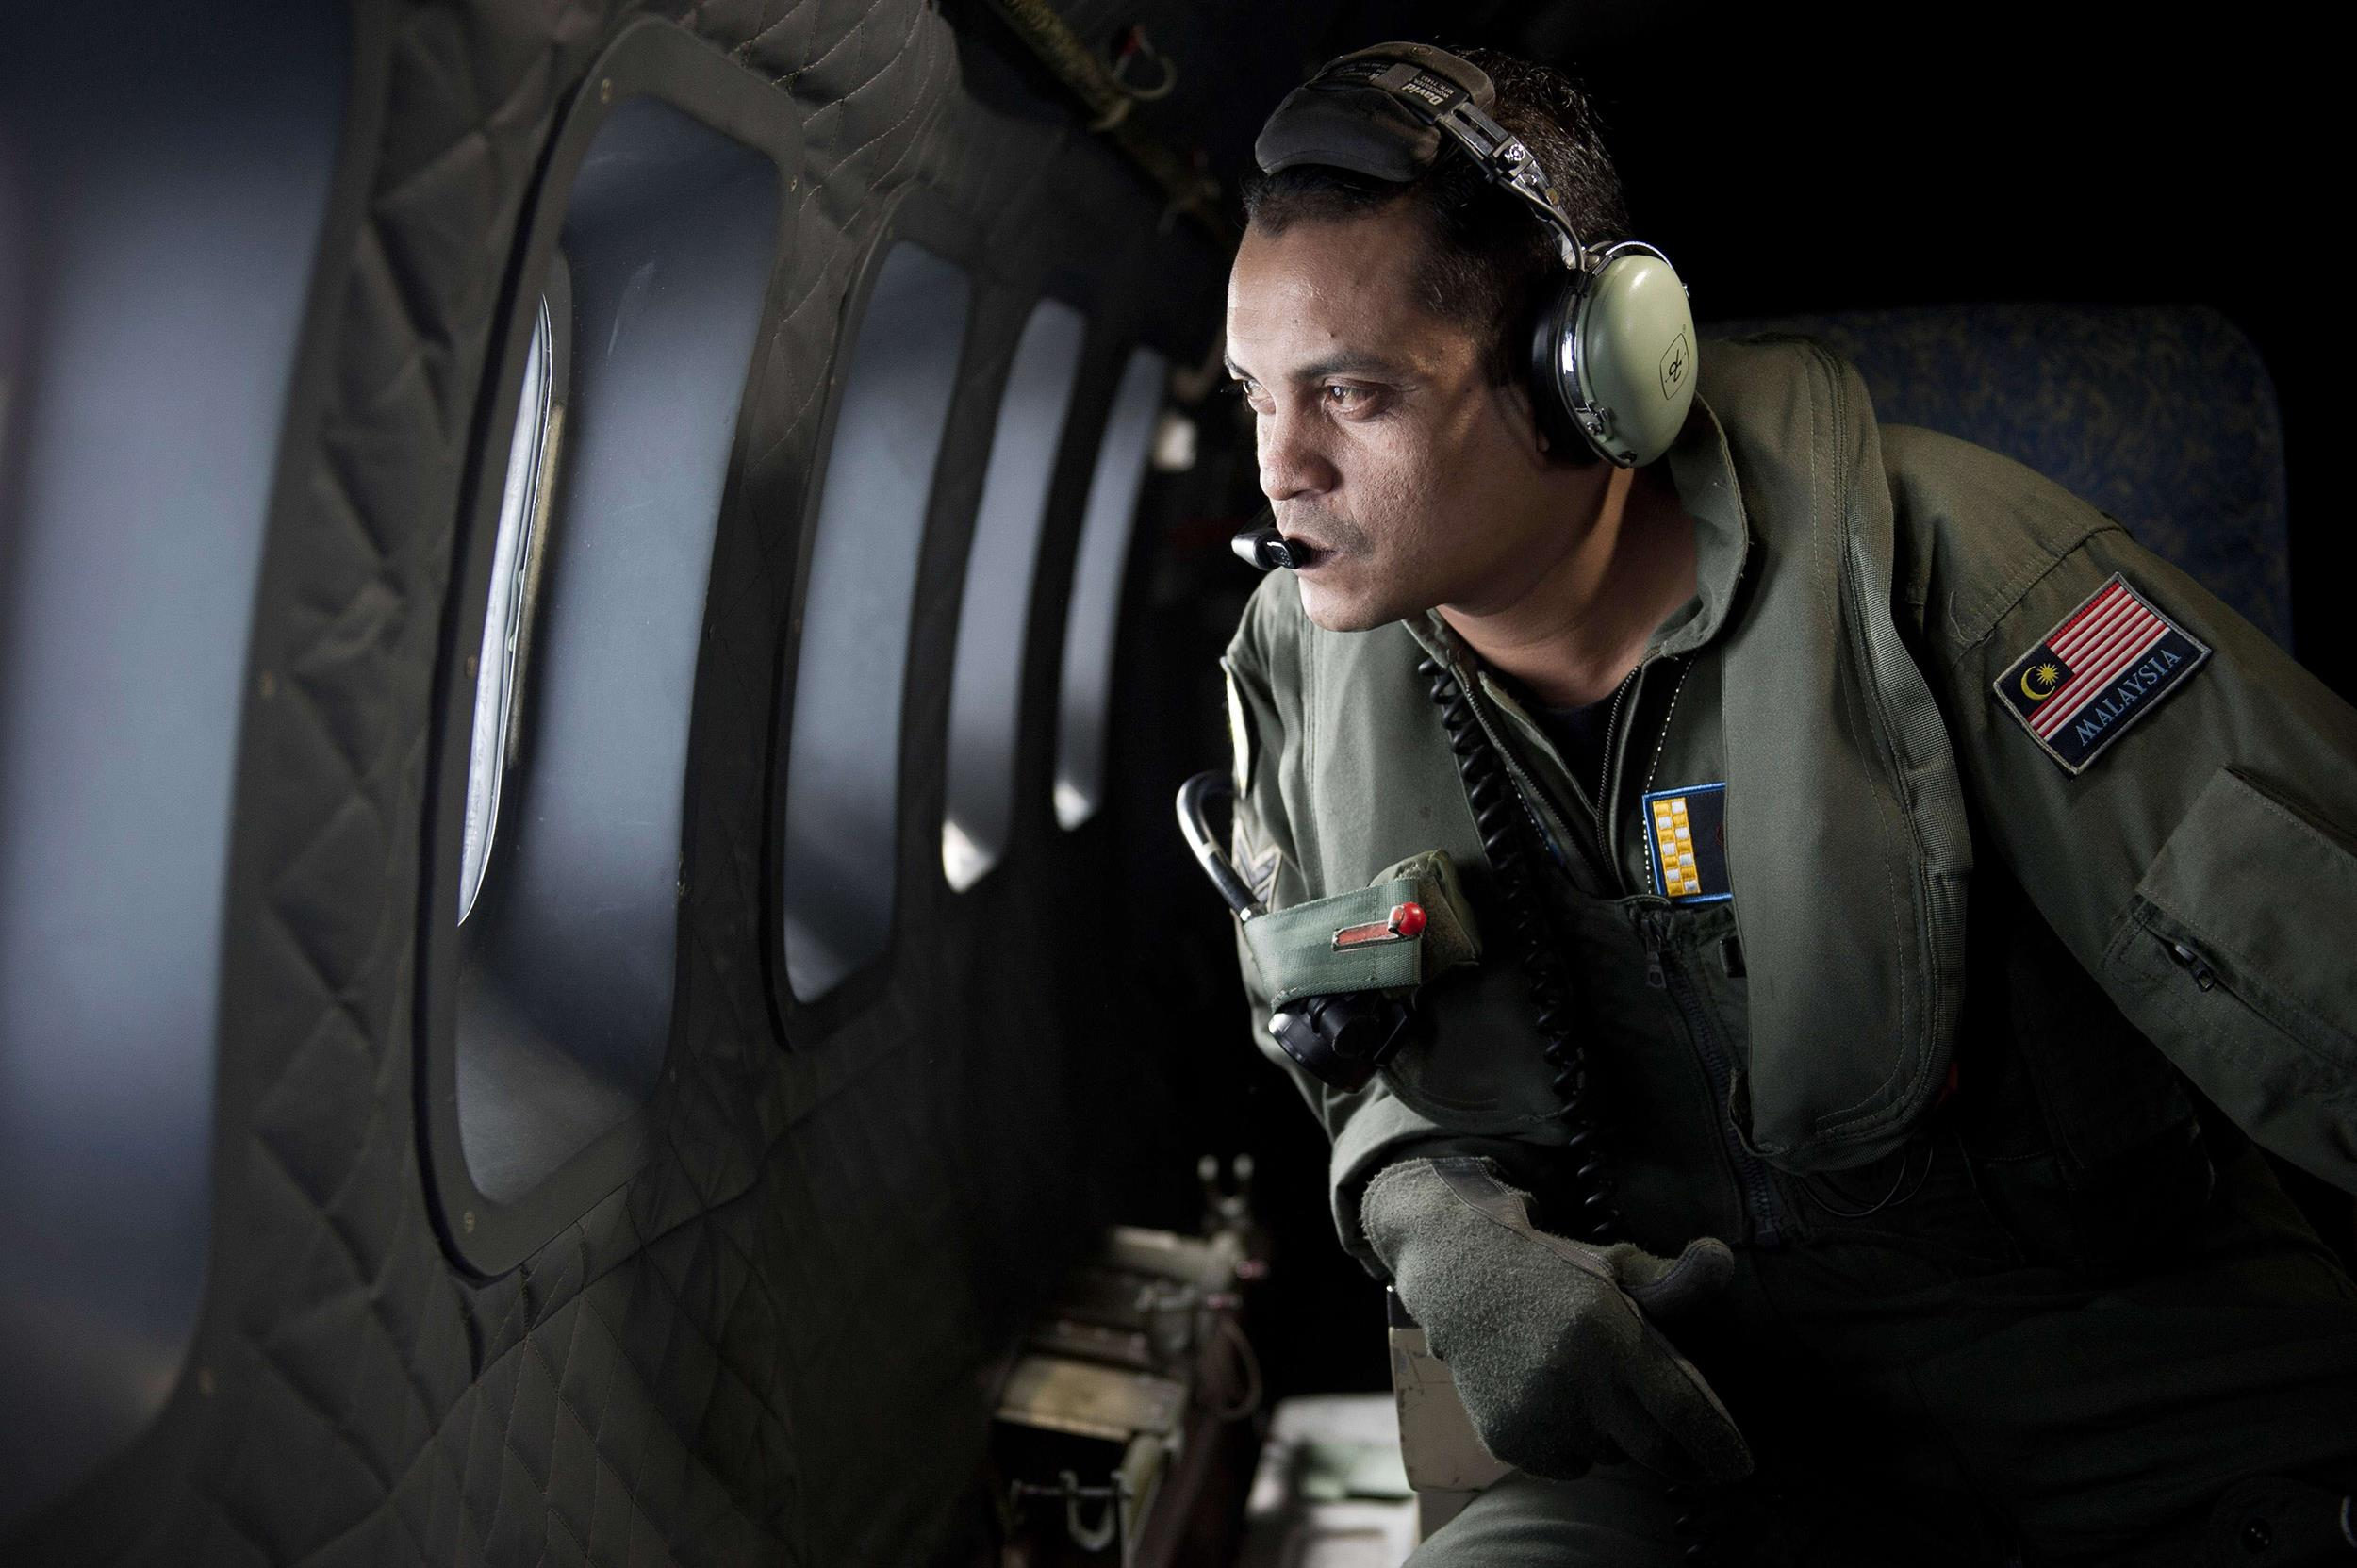 Image: A crew member looks out the windows from a Malaysian Air Force CN235 aircraft during a search and rescue operation